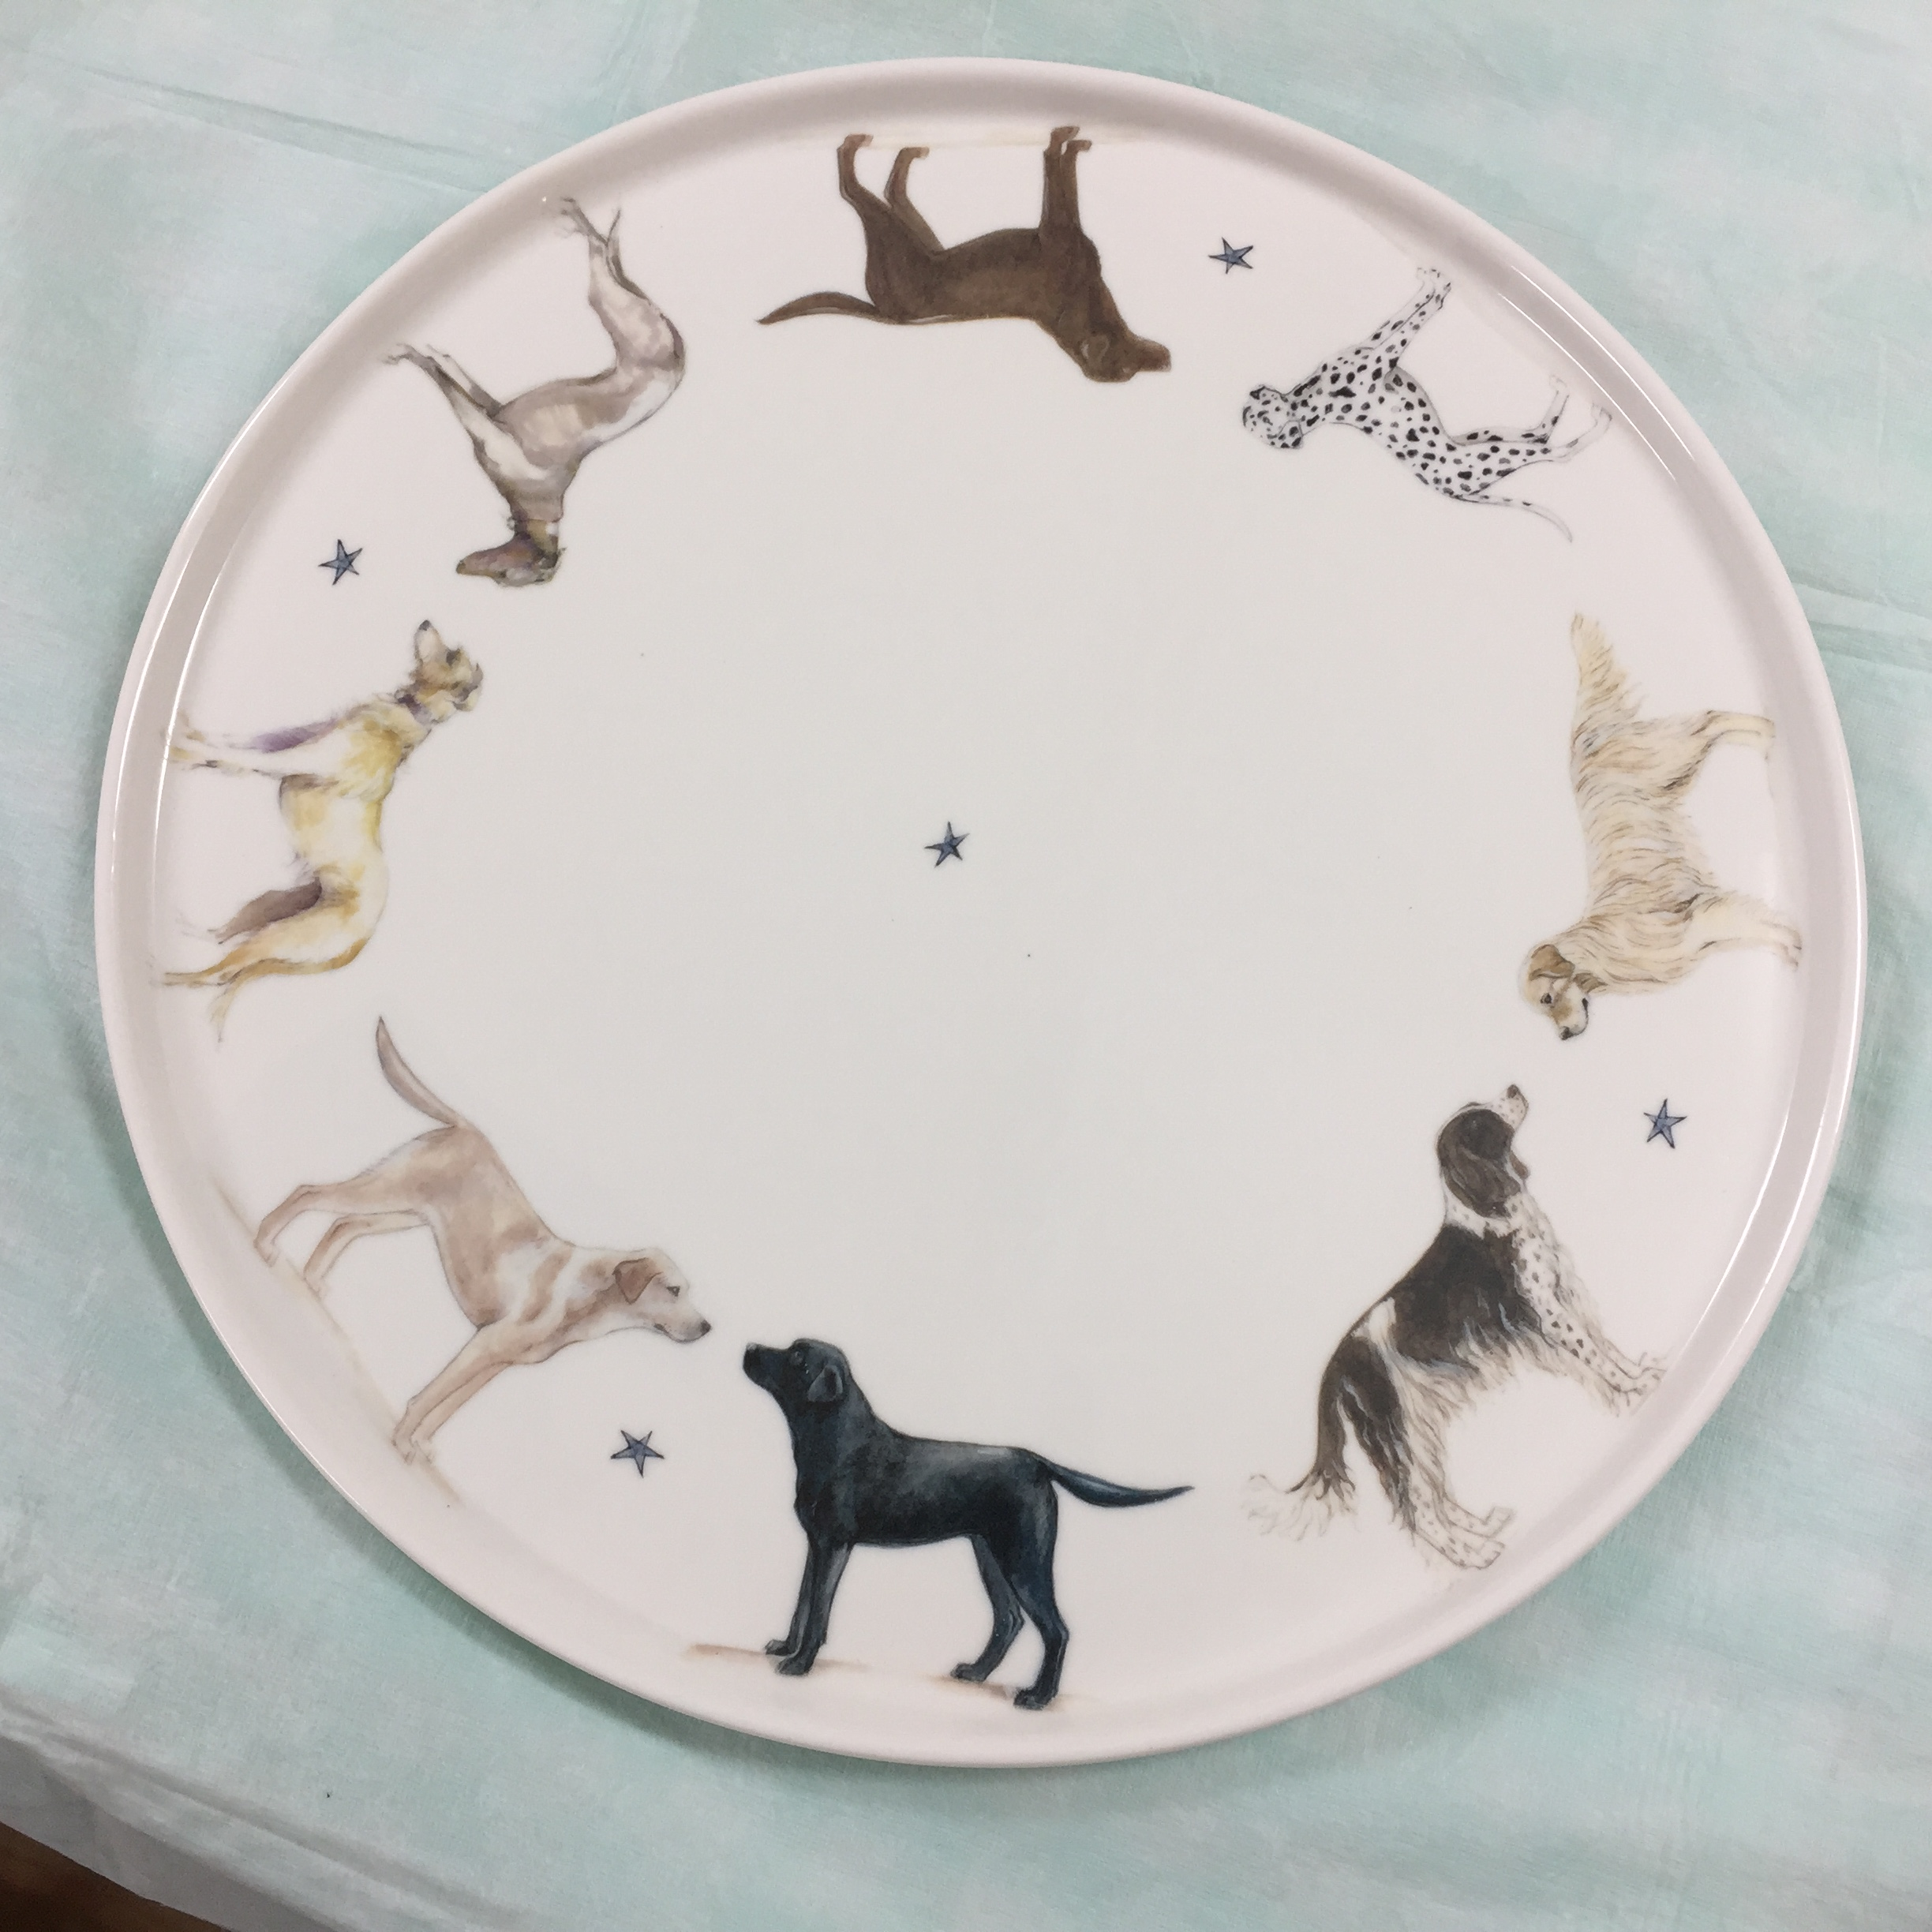 Large Cake Plate (oven proof porcelain)